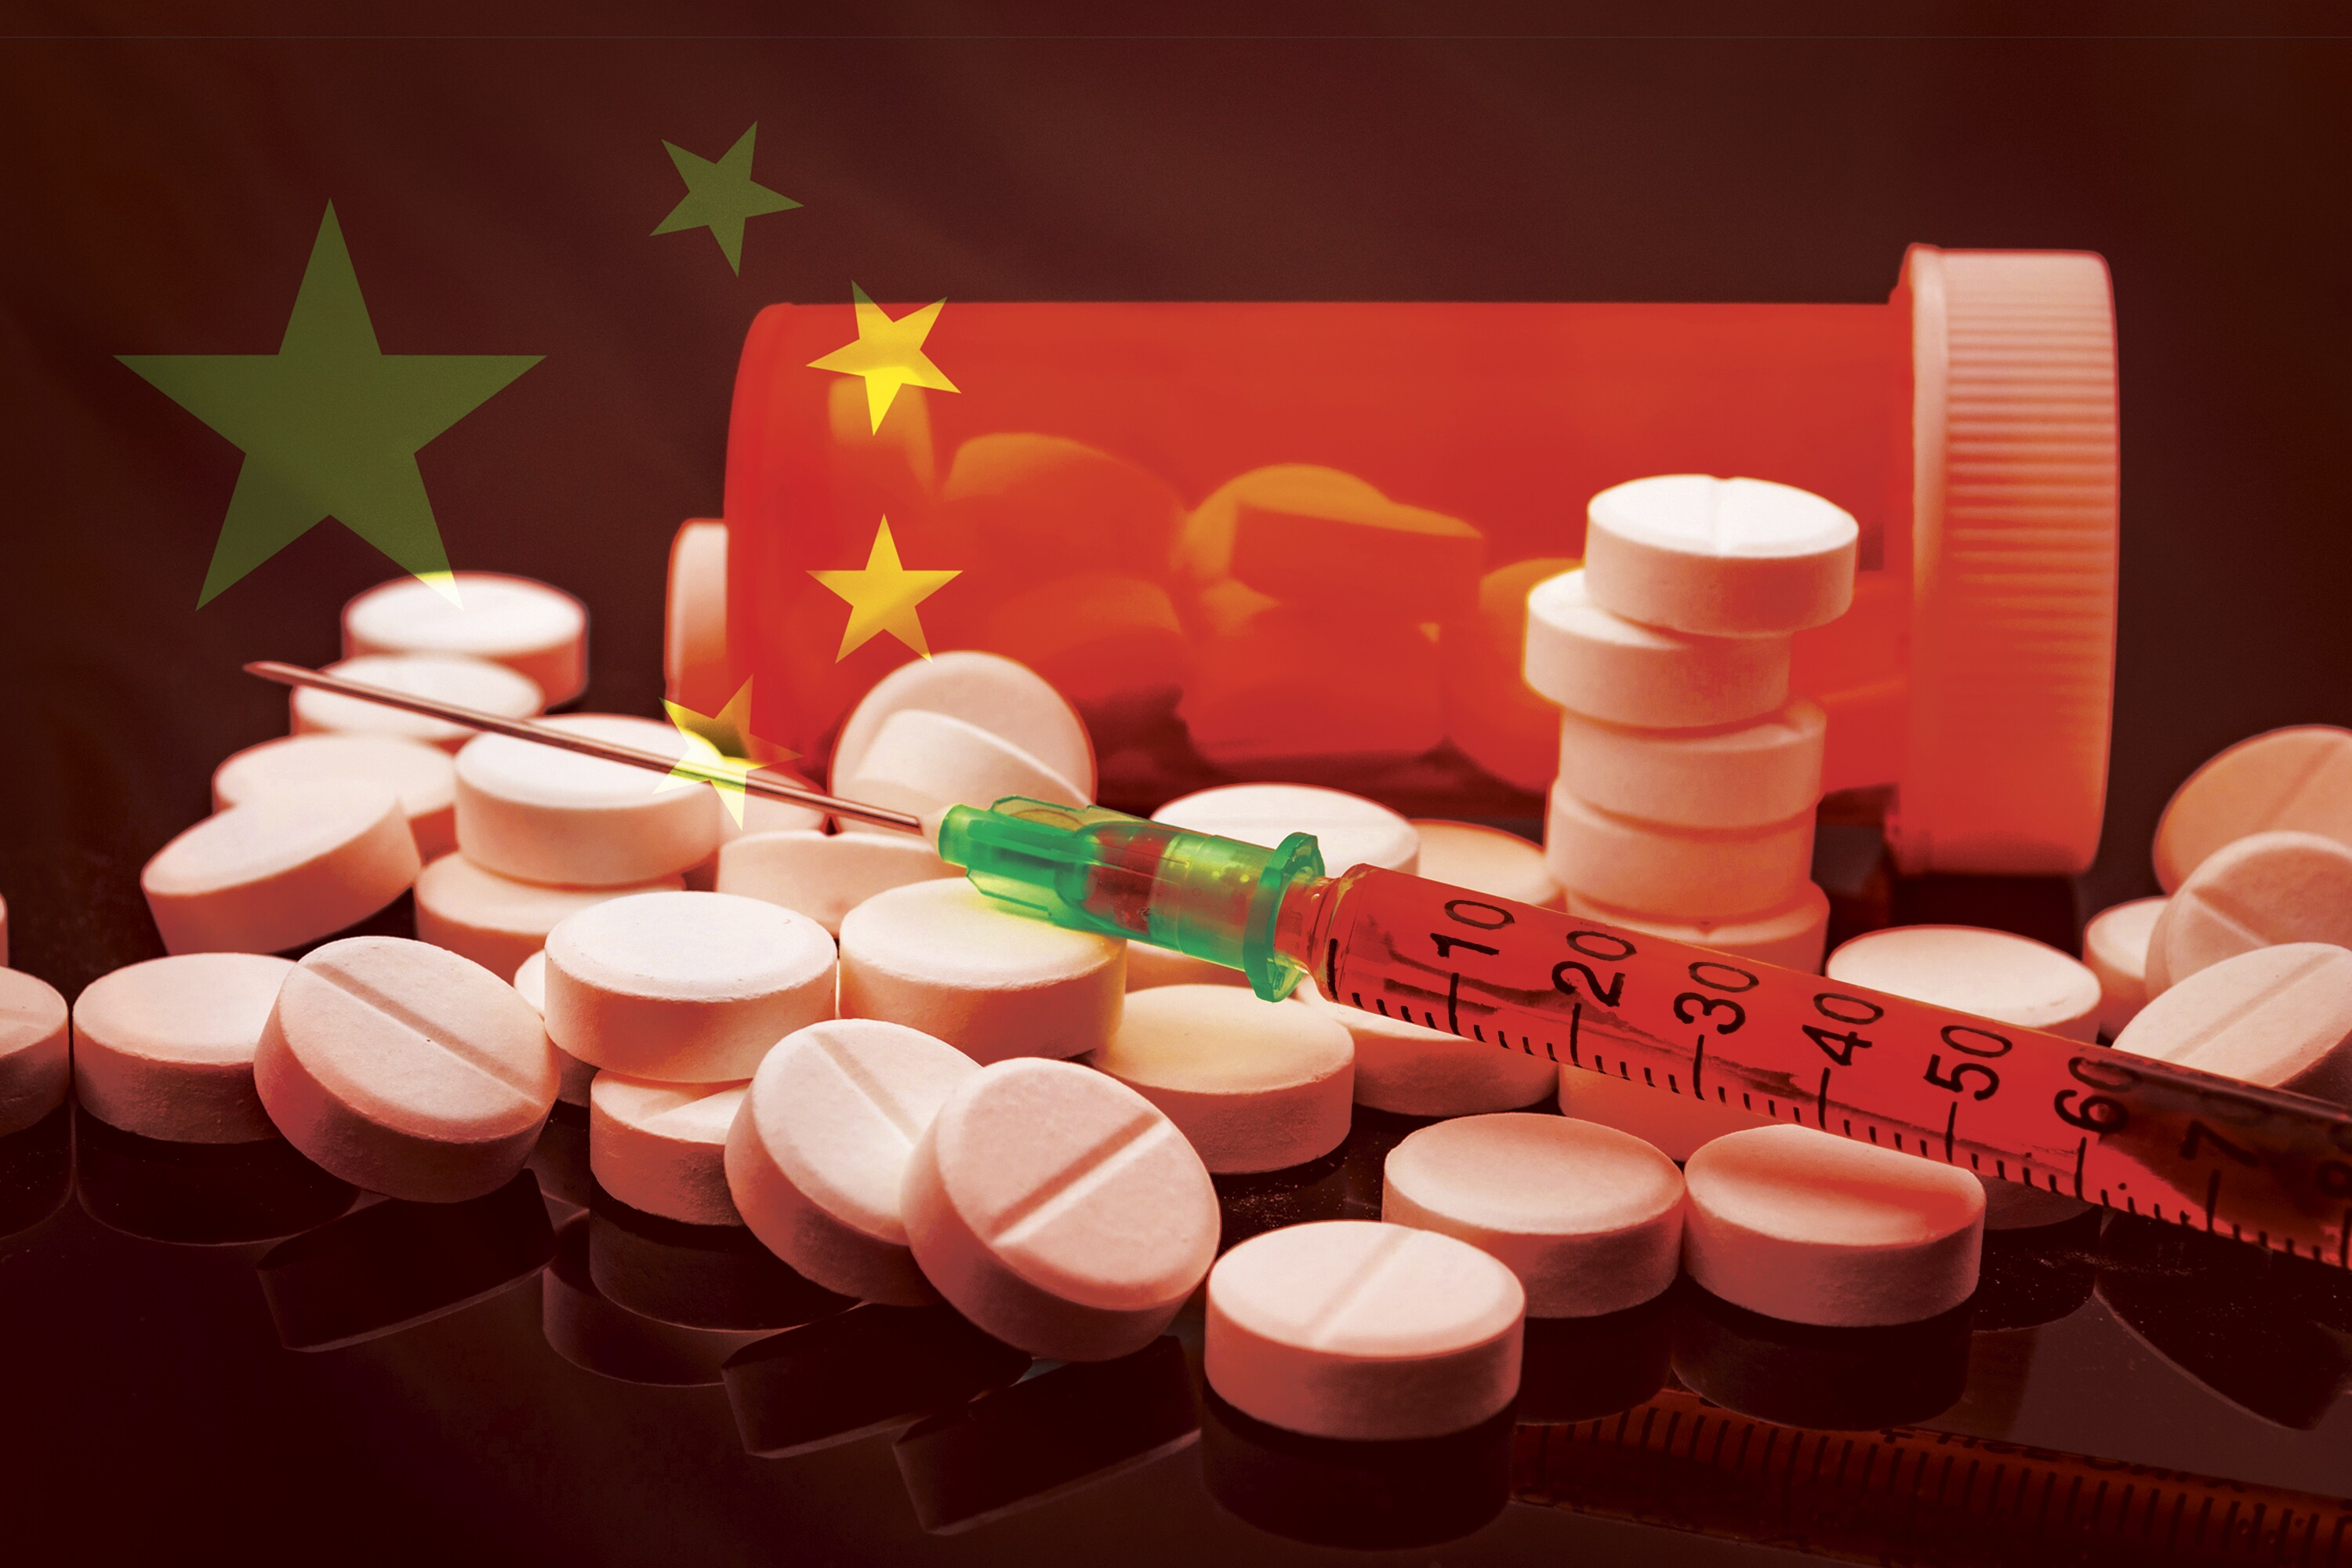 Brazen fentanyl sales continue online as China vows crackdown